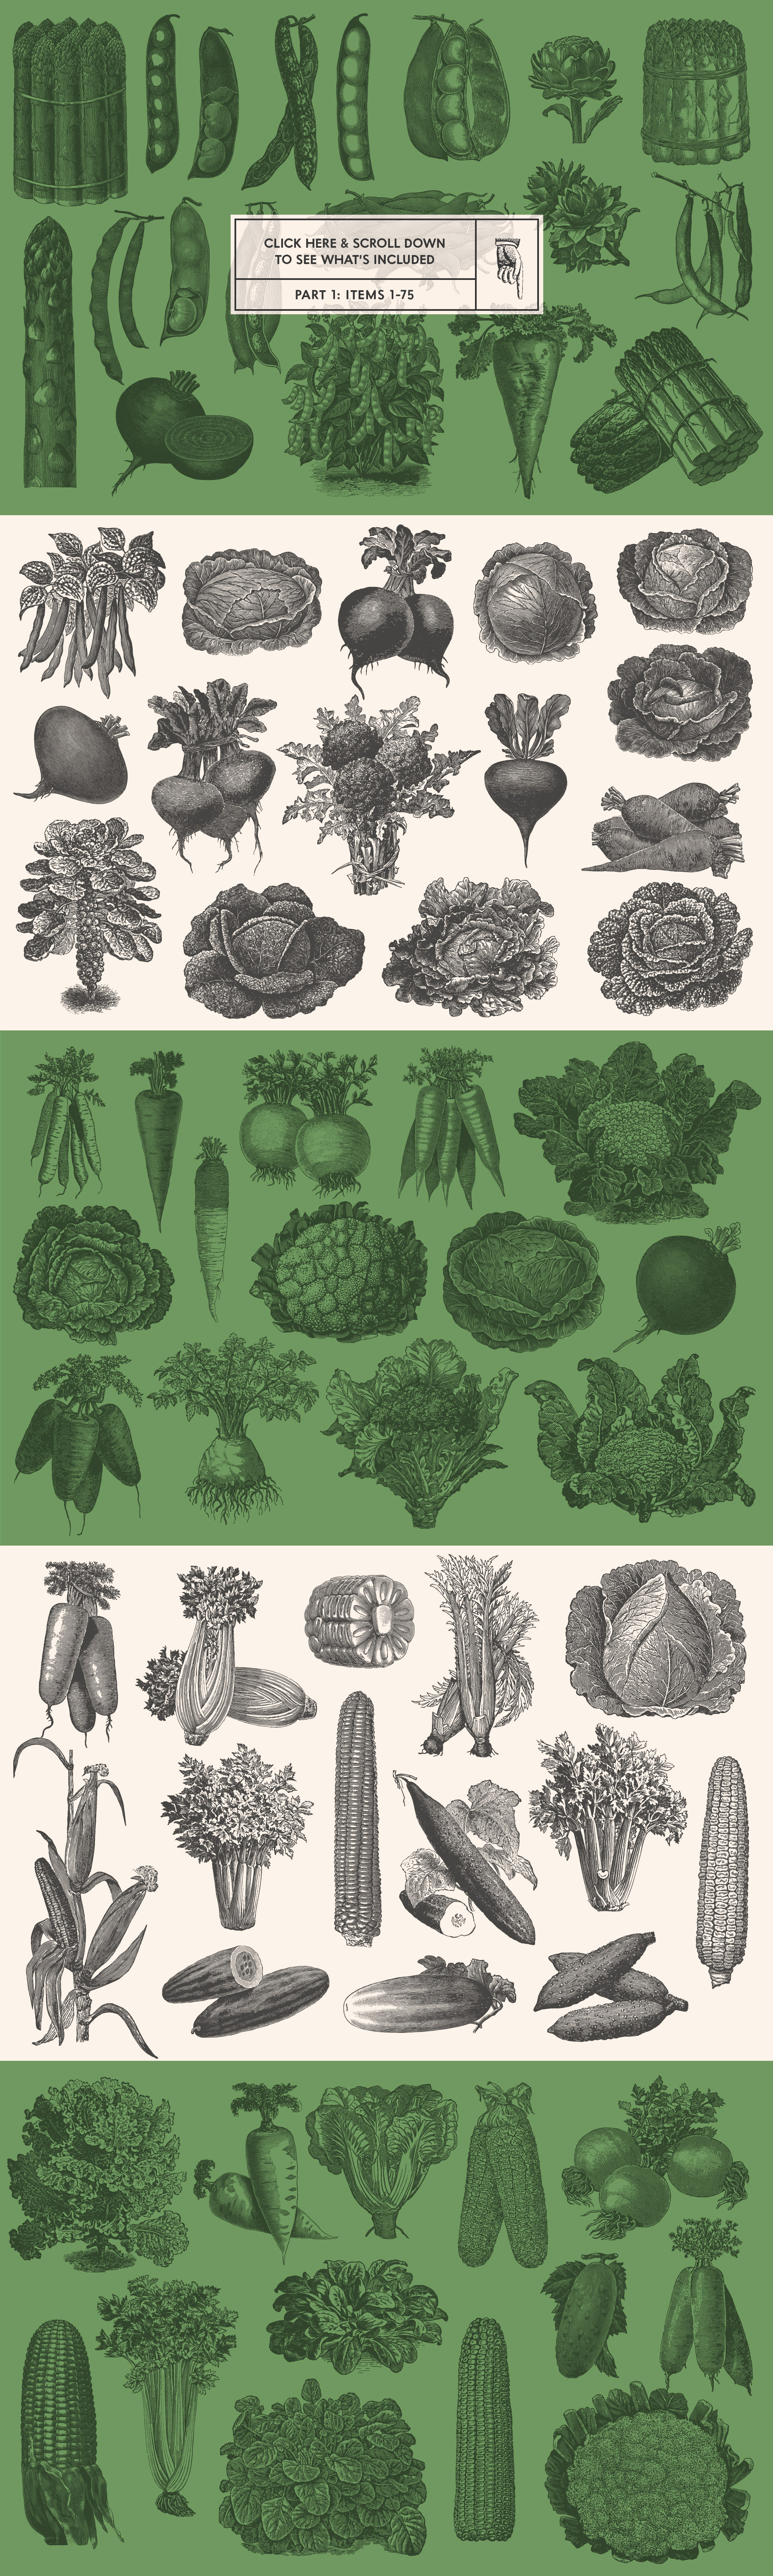 220 Vintage Vegetable Illustrations by Graphic Goods – all items preview 01